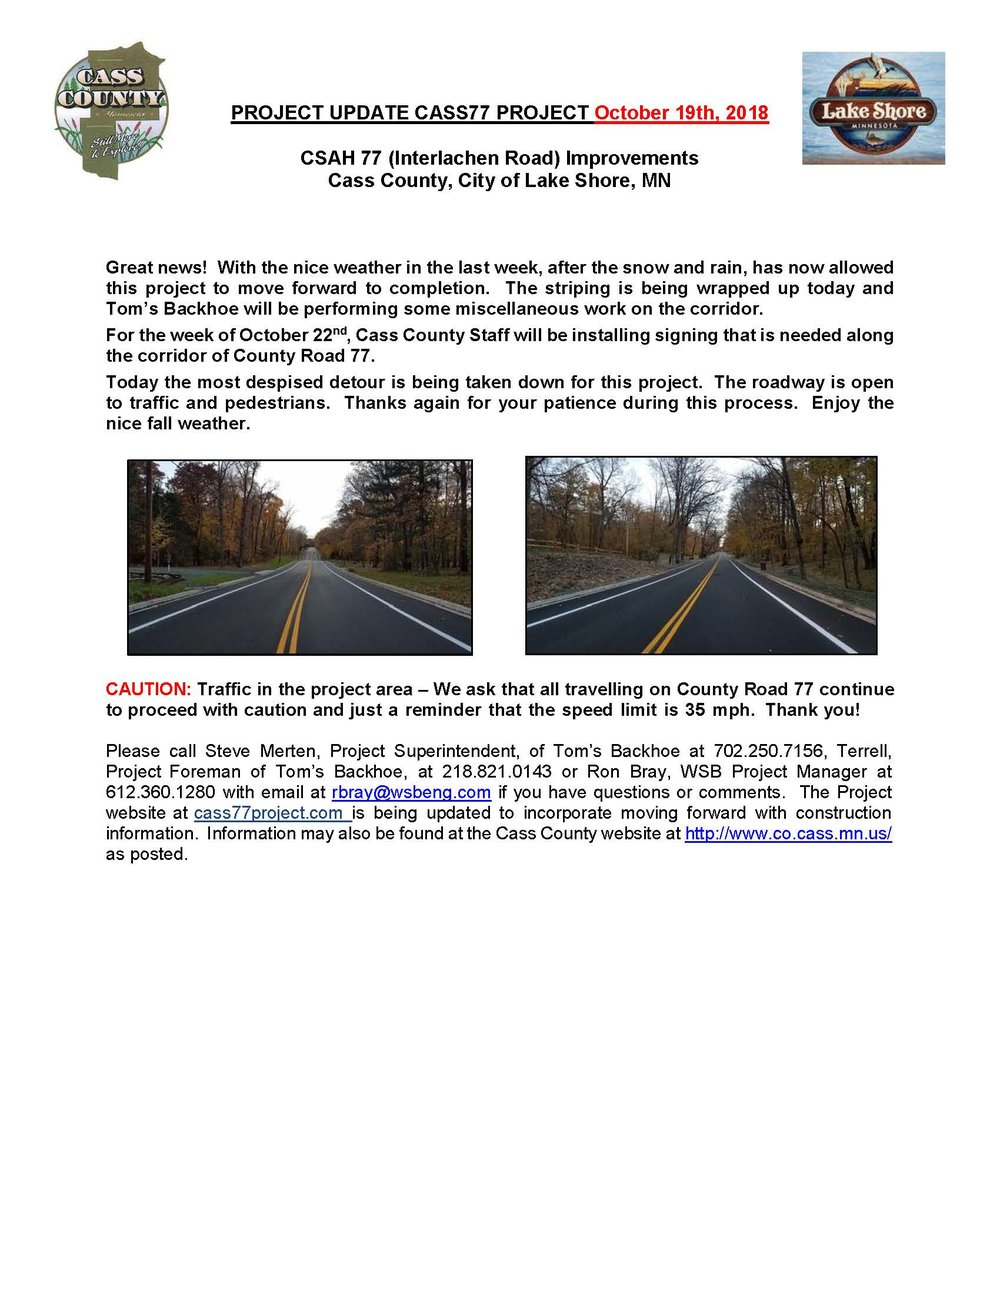 Cass County CSAH 77 Project update October 19th 2018.jpg